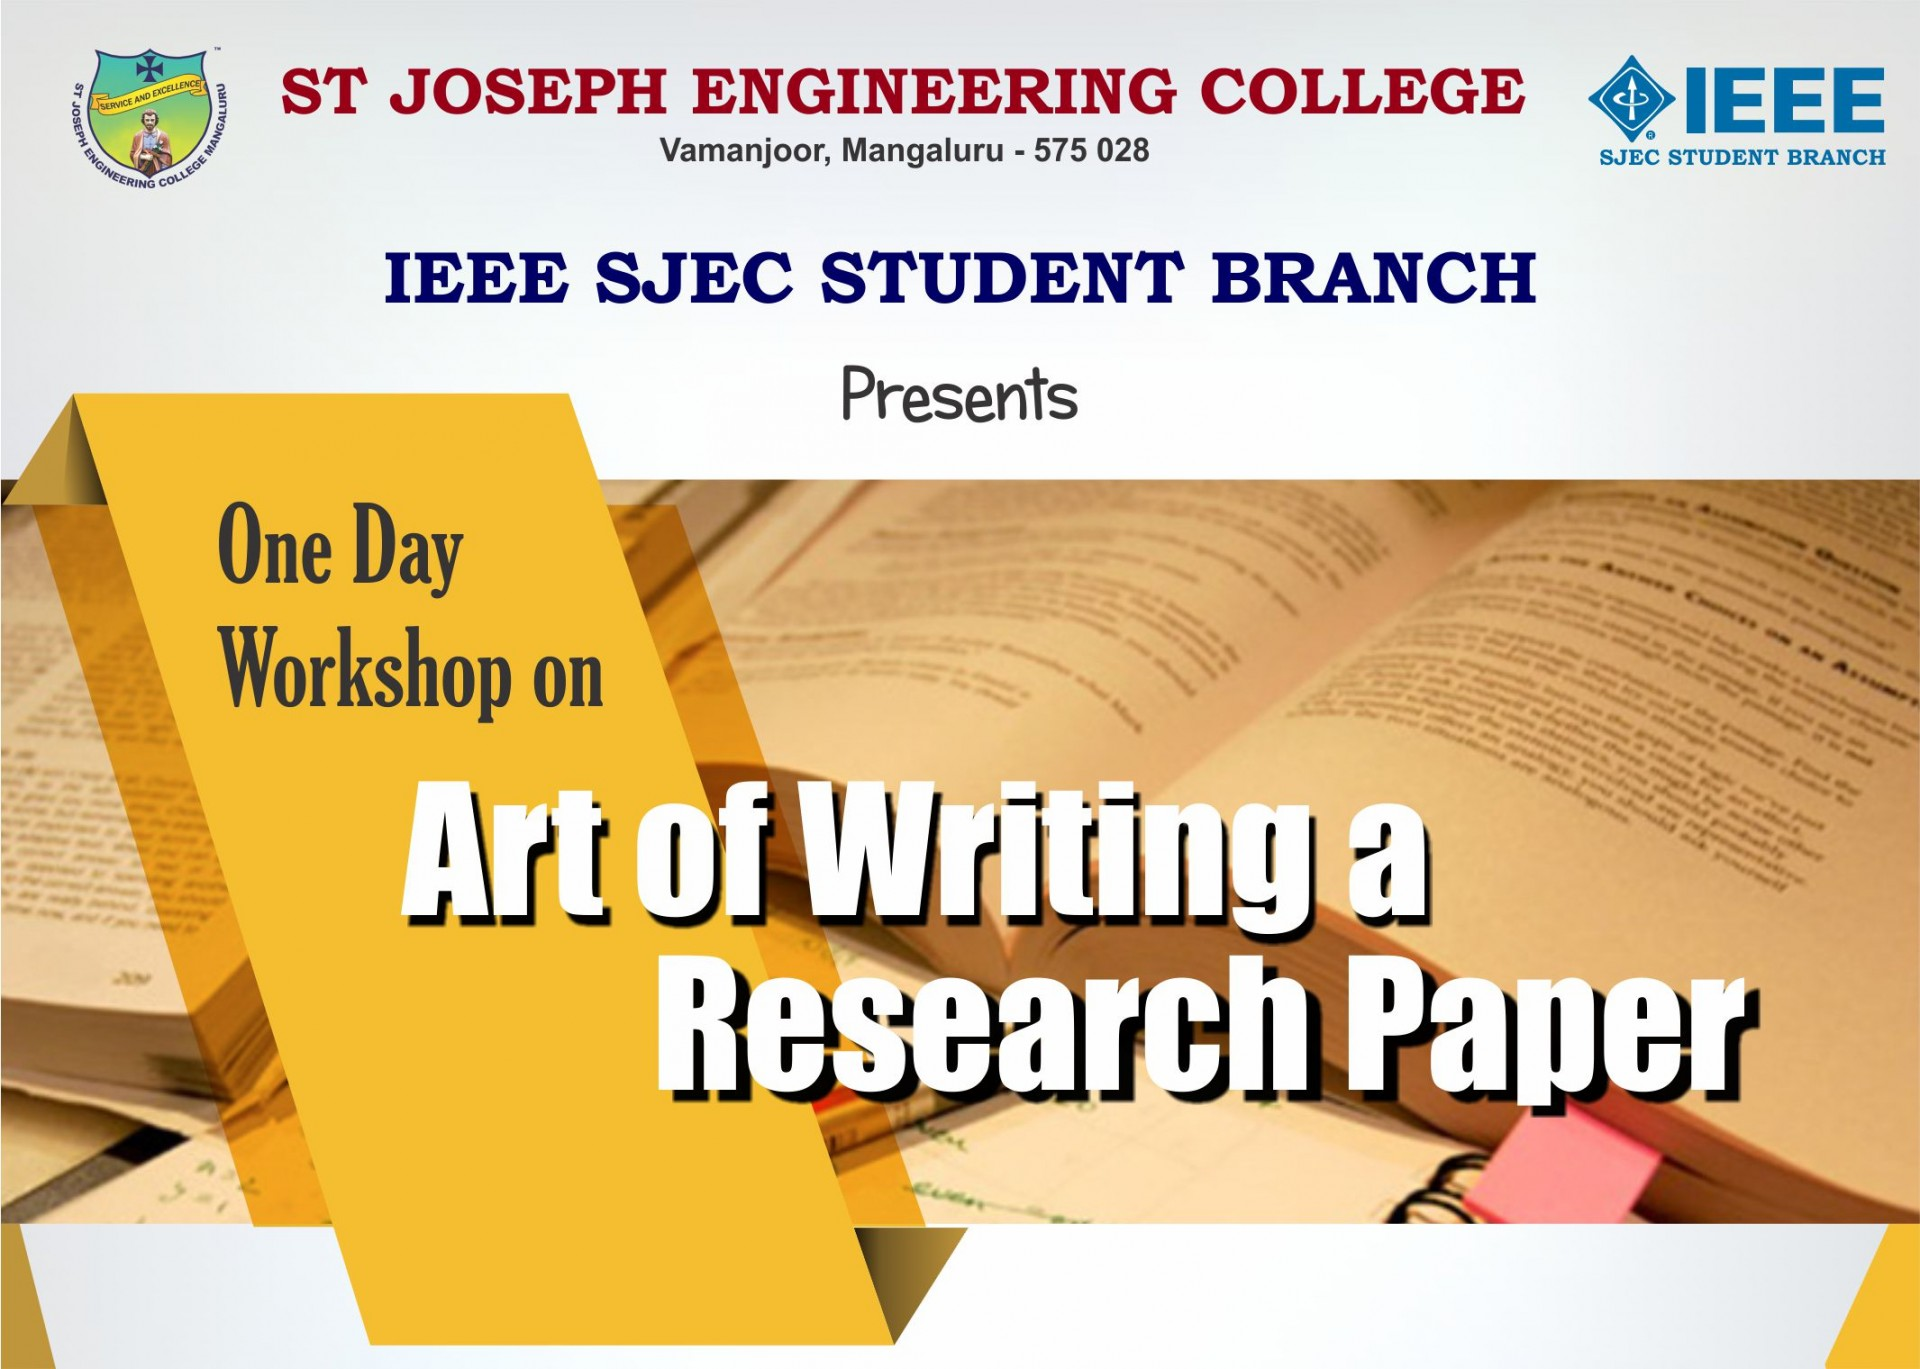 005 Workshop Banner Researchs Writing Fascinating Research Papers Best Paper Services In India Benefits Style 1920